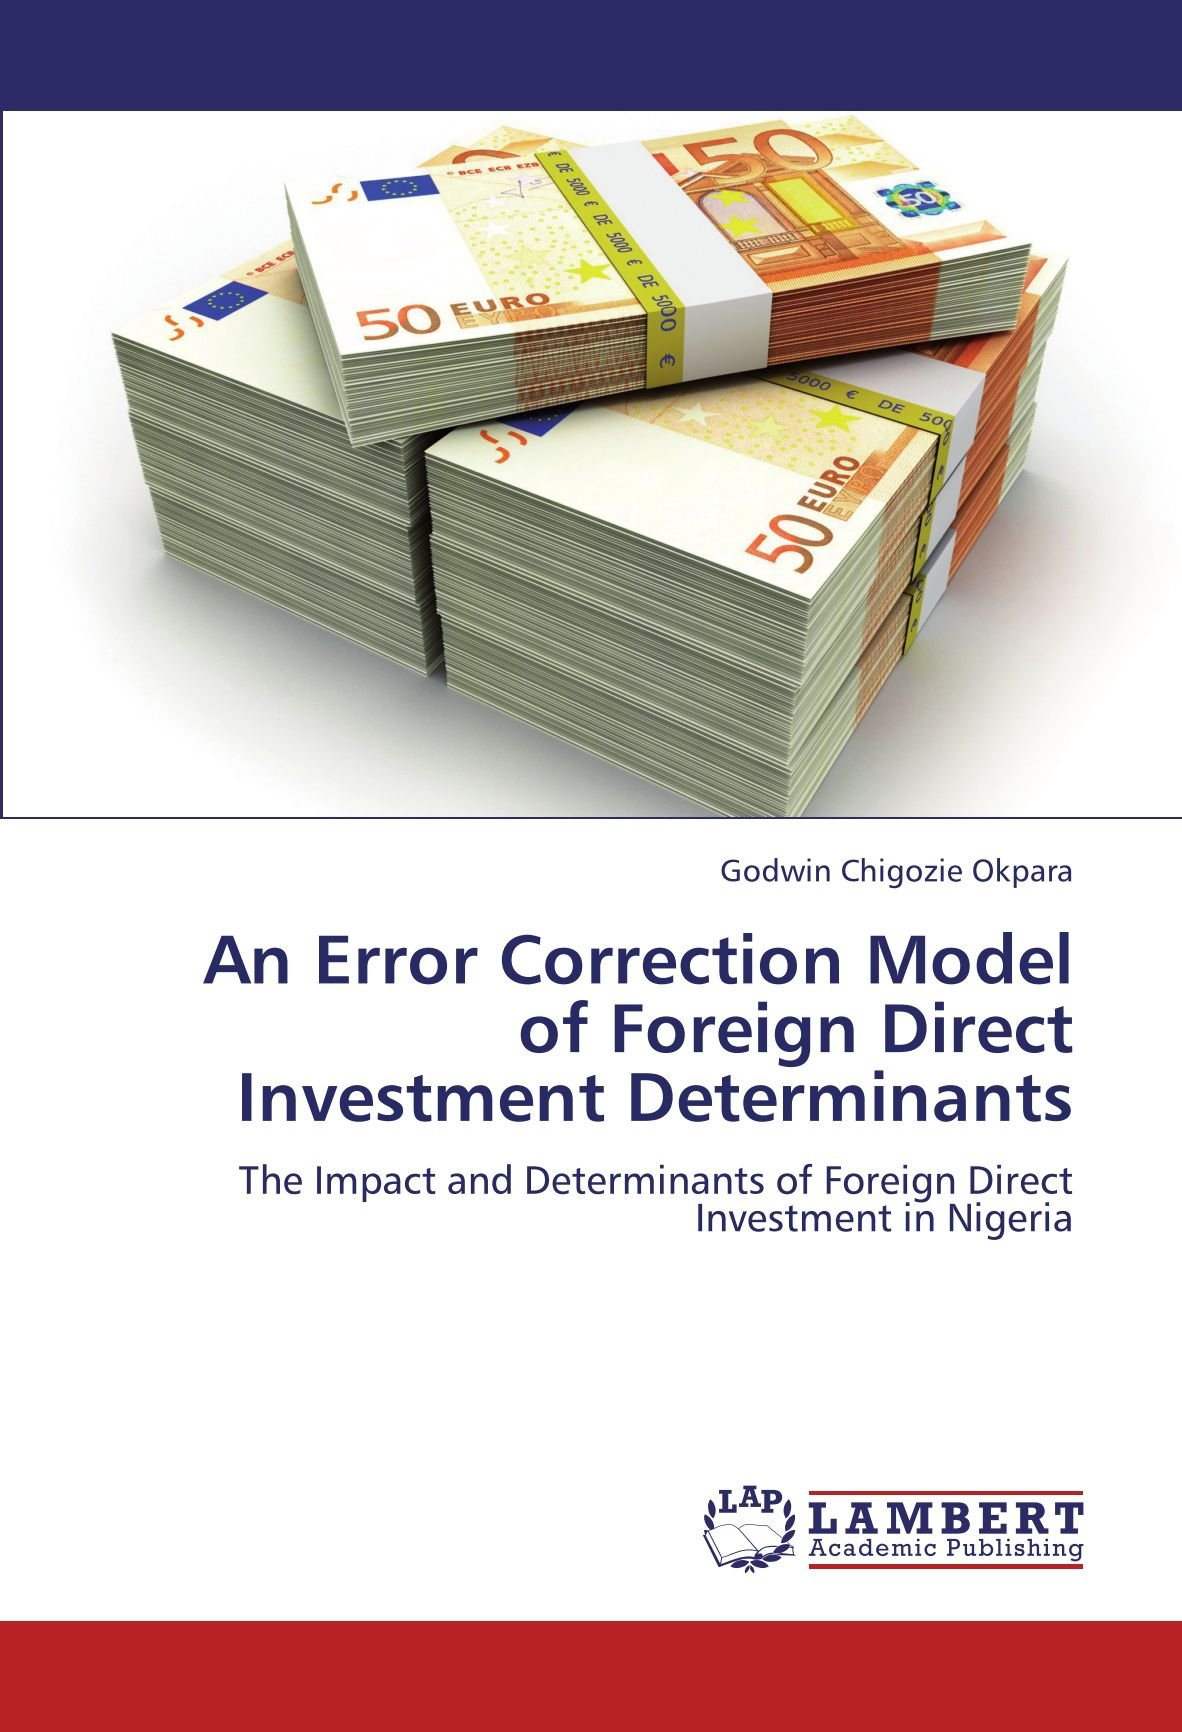 Download An Error Correction Model of Foreign Direct Investment Determinants: The Impact and Determinants of Foreign Direct Investment in Nigeria pdf